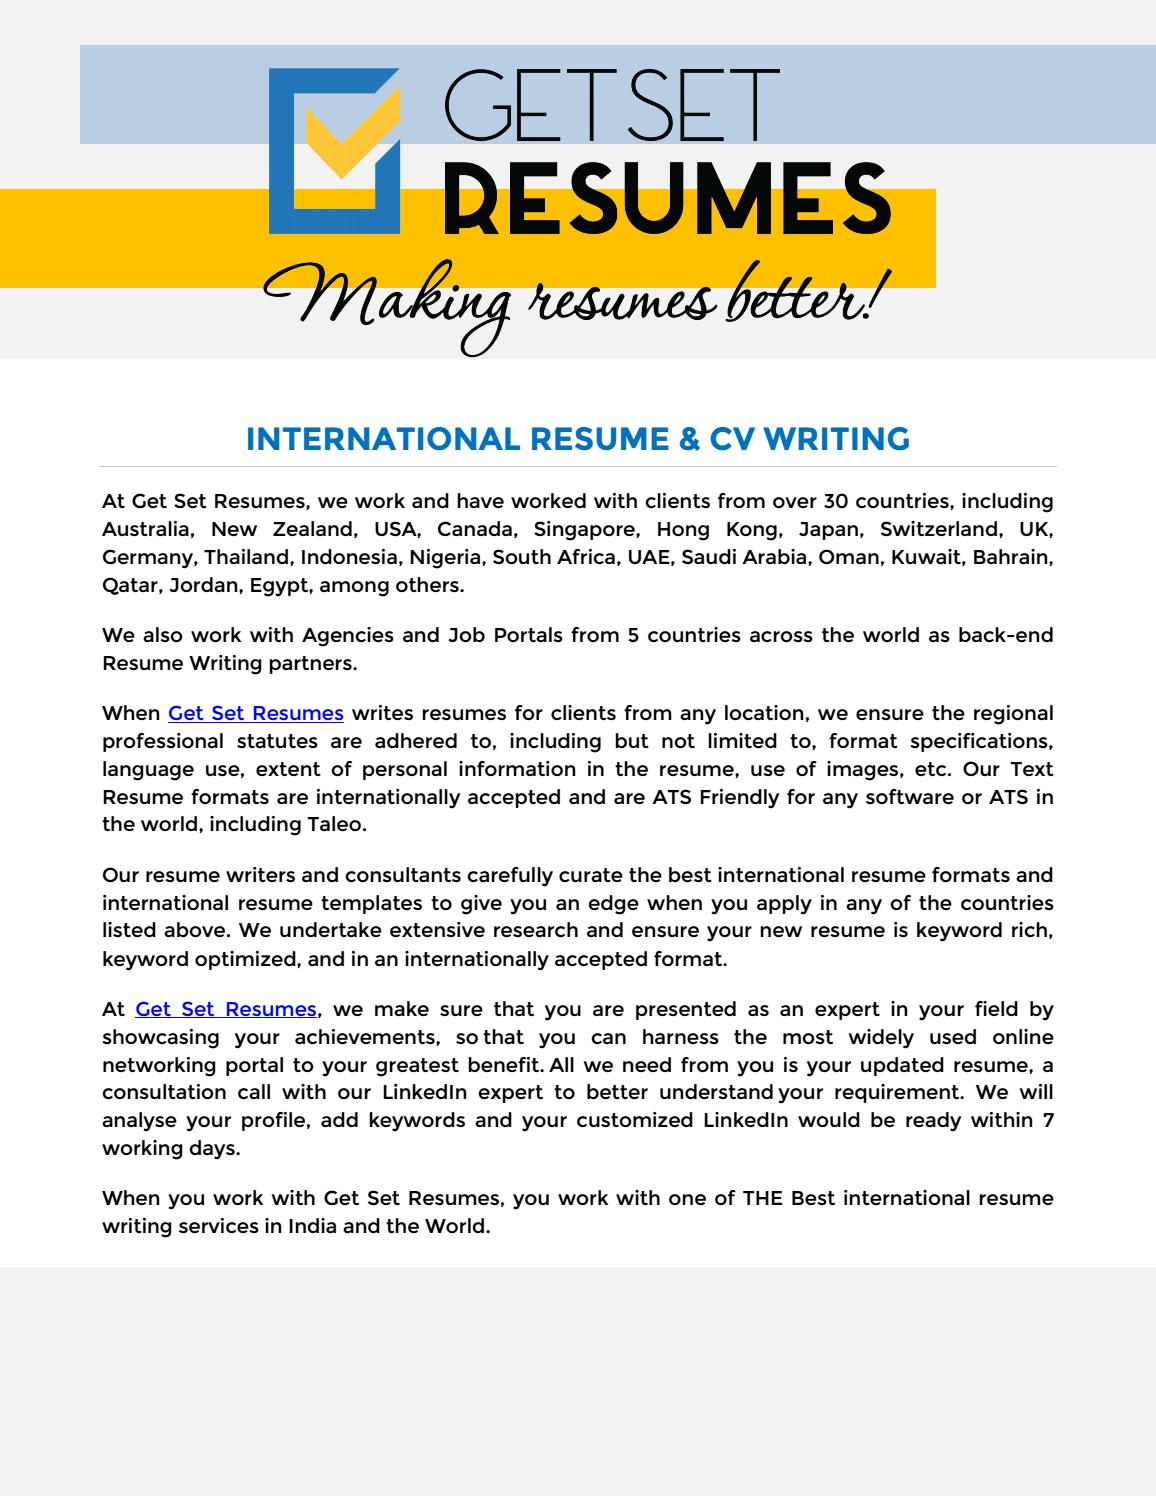 International Resume Writing Service Get Set Resumes By Get Set